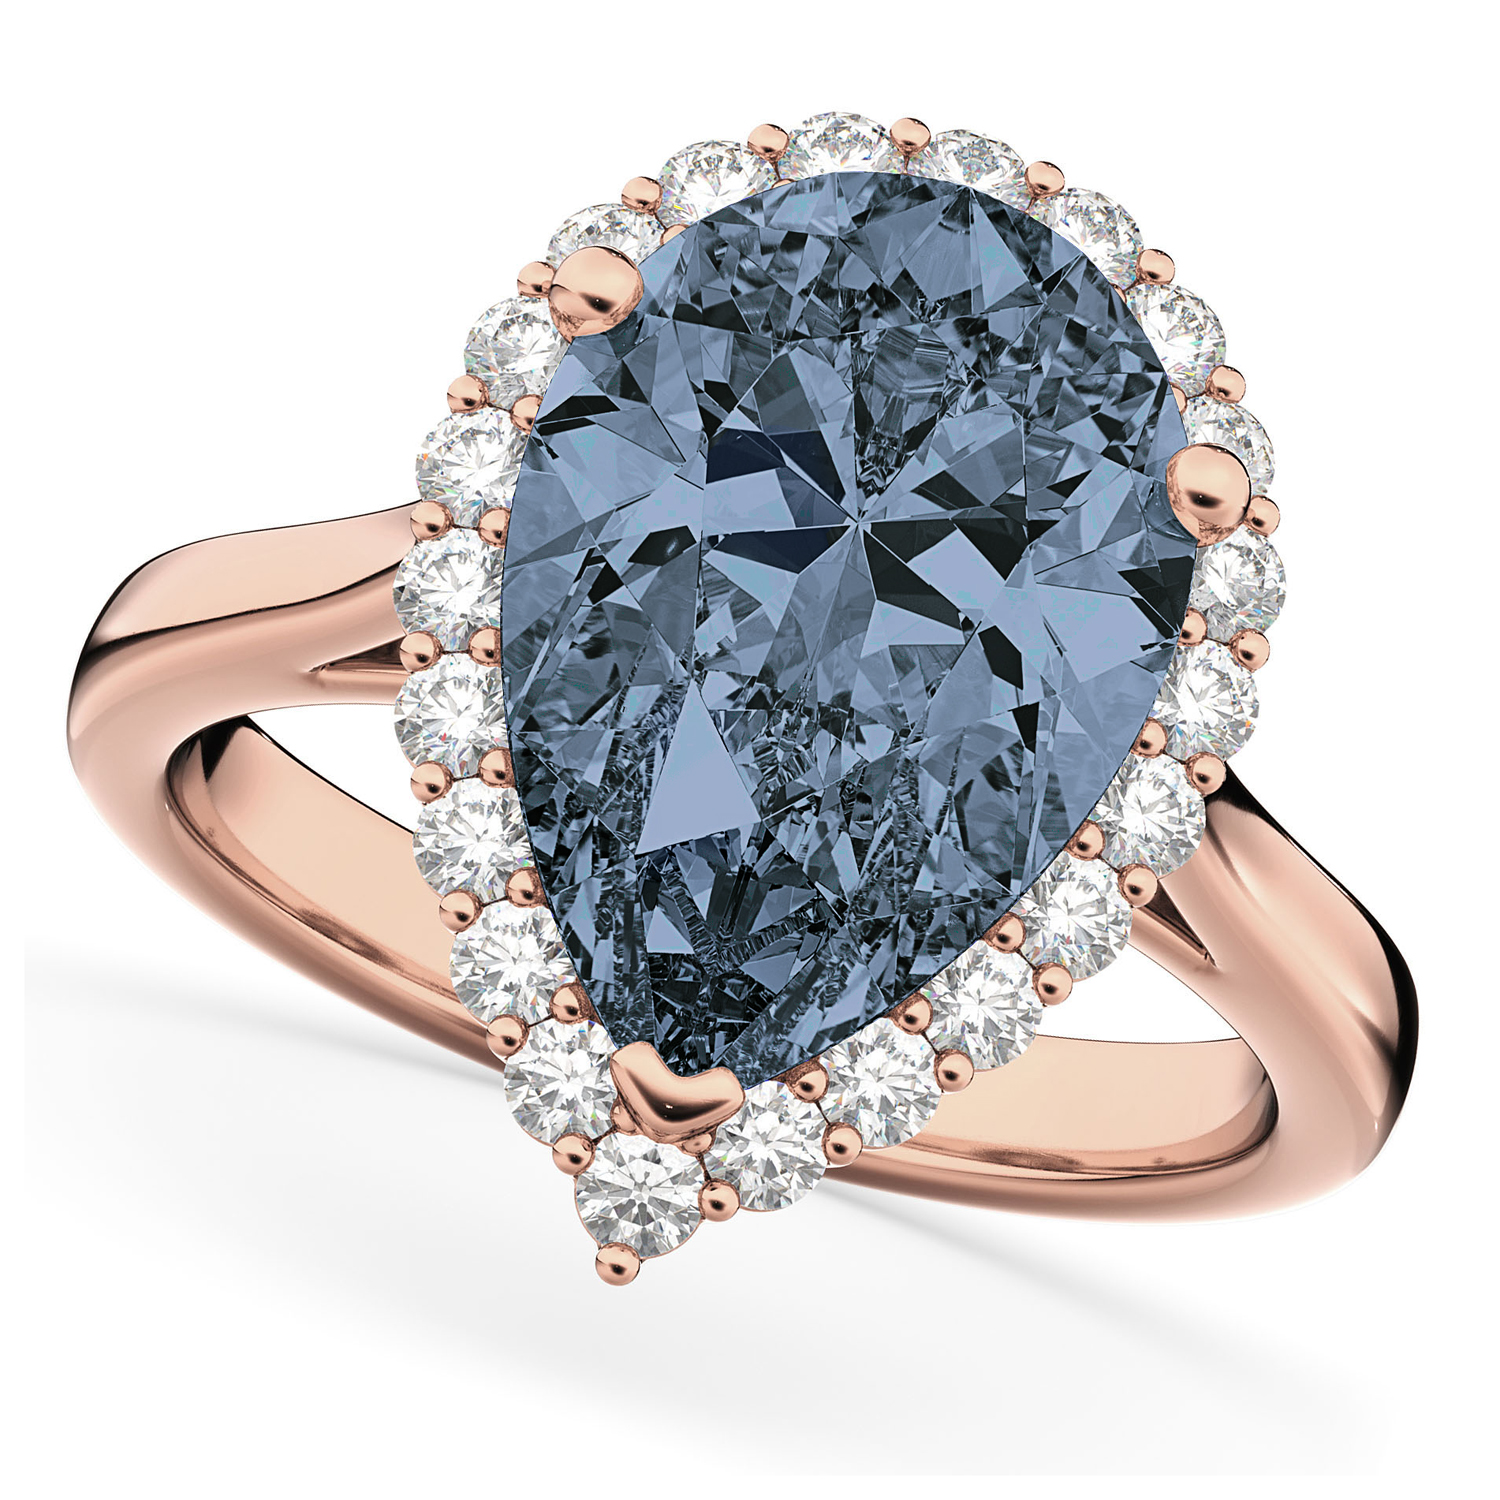 Pear Cut Halo Gray Spinel & Diamond Engagement Ring 14K Rose Gold 4.69ct